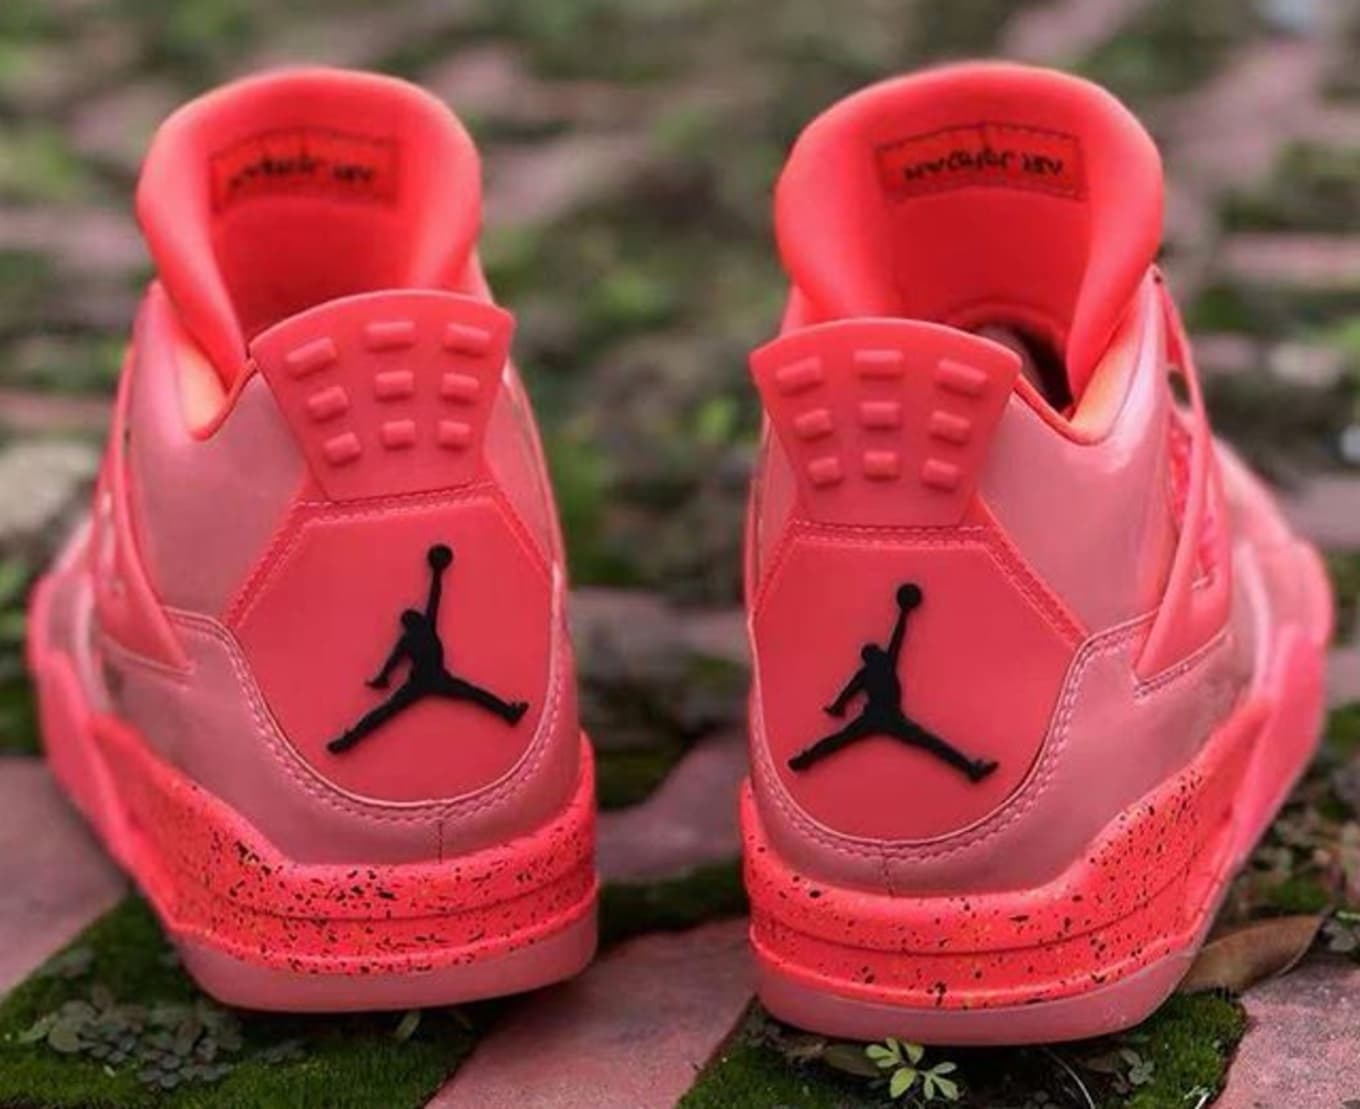 d5a55aaaff2 WMNS Air Jordan 4 NRG 'Hot Punch' Release Date | Sole Collector